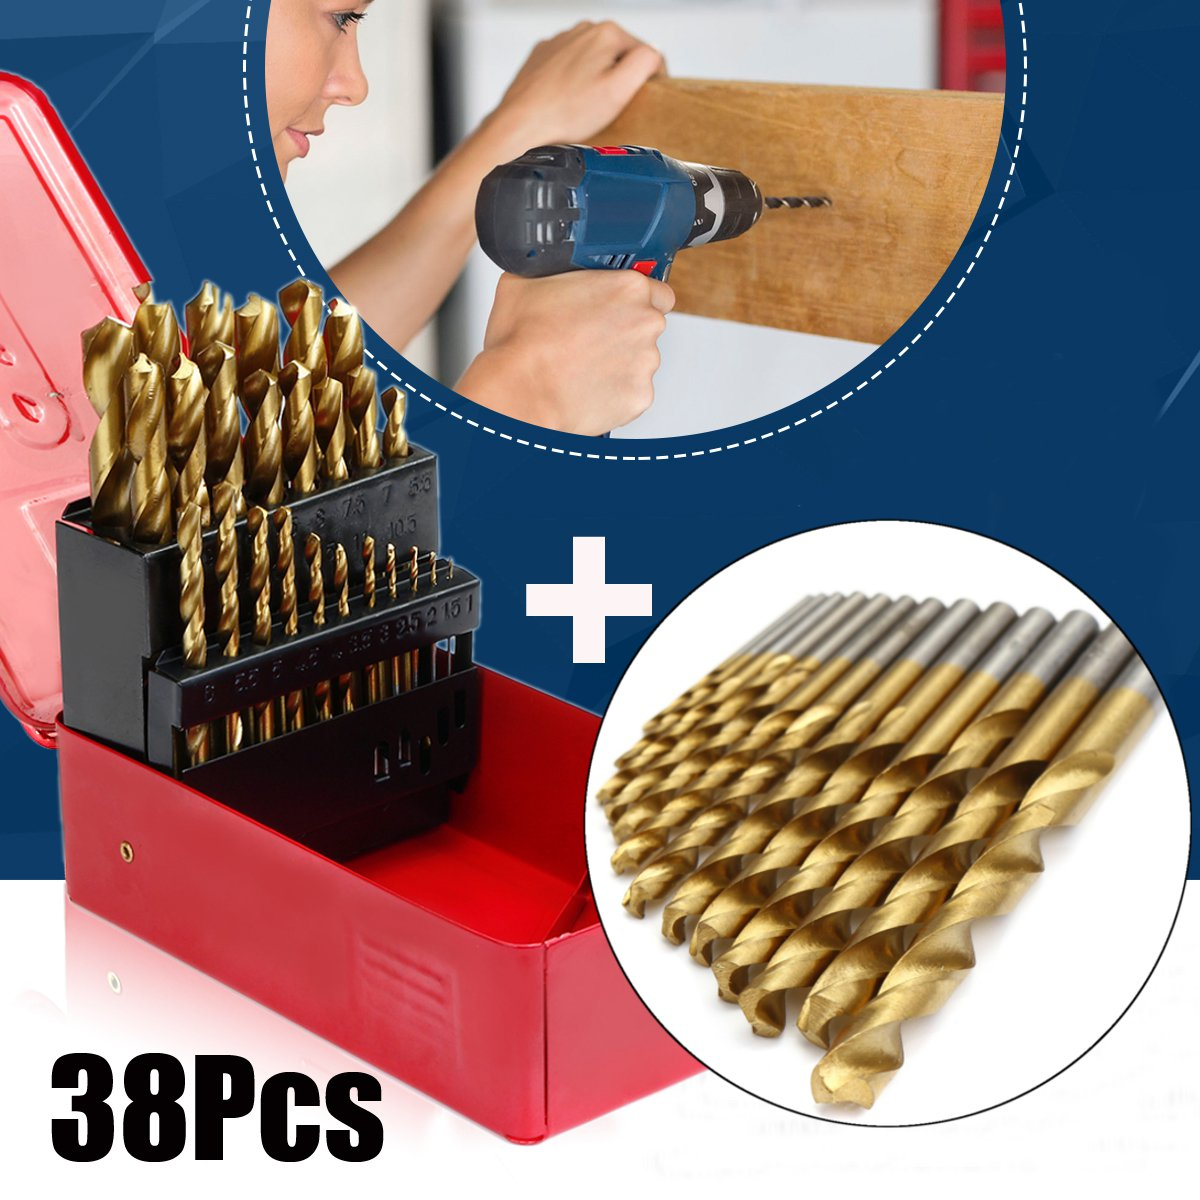 38Pcs Titanium Coated Drill Bits HSS High Speed Steel Drill Bits Set Tool High Quality Power Tools 1-13mm